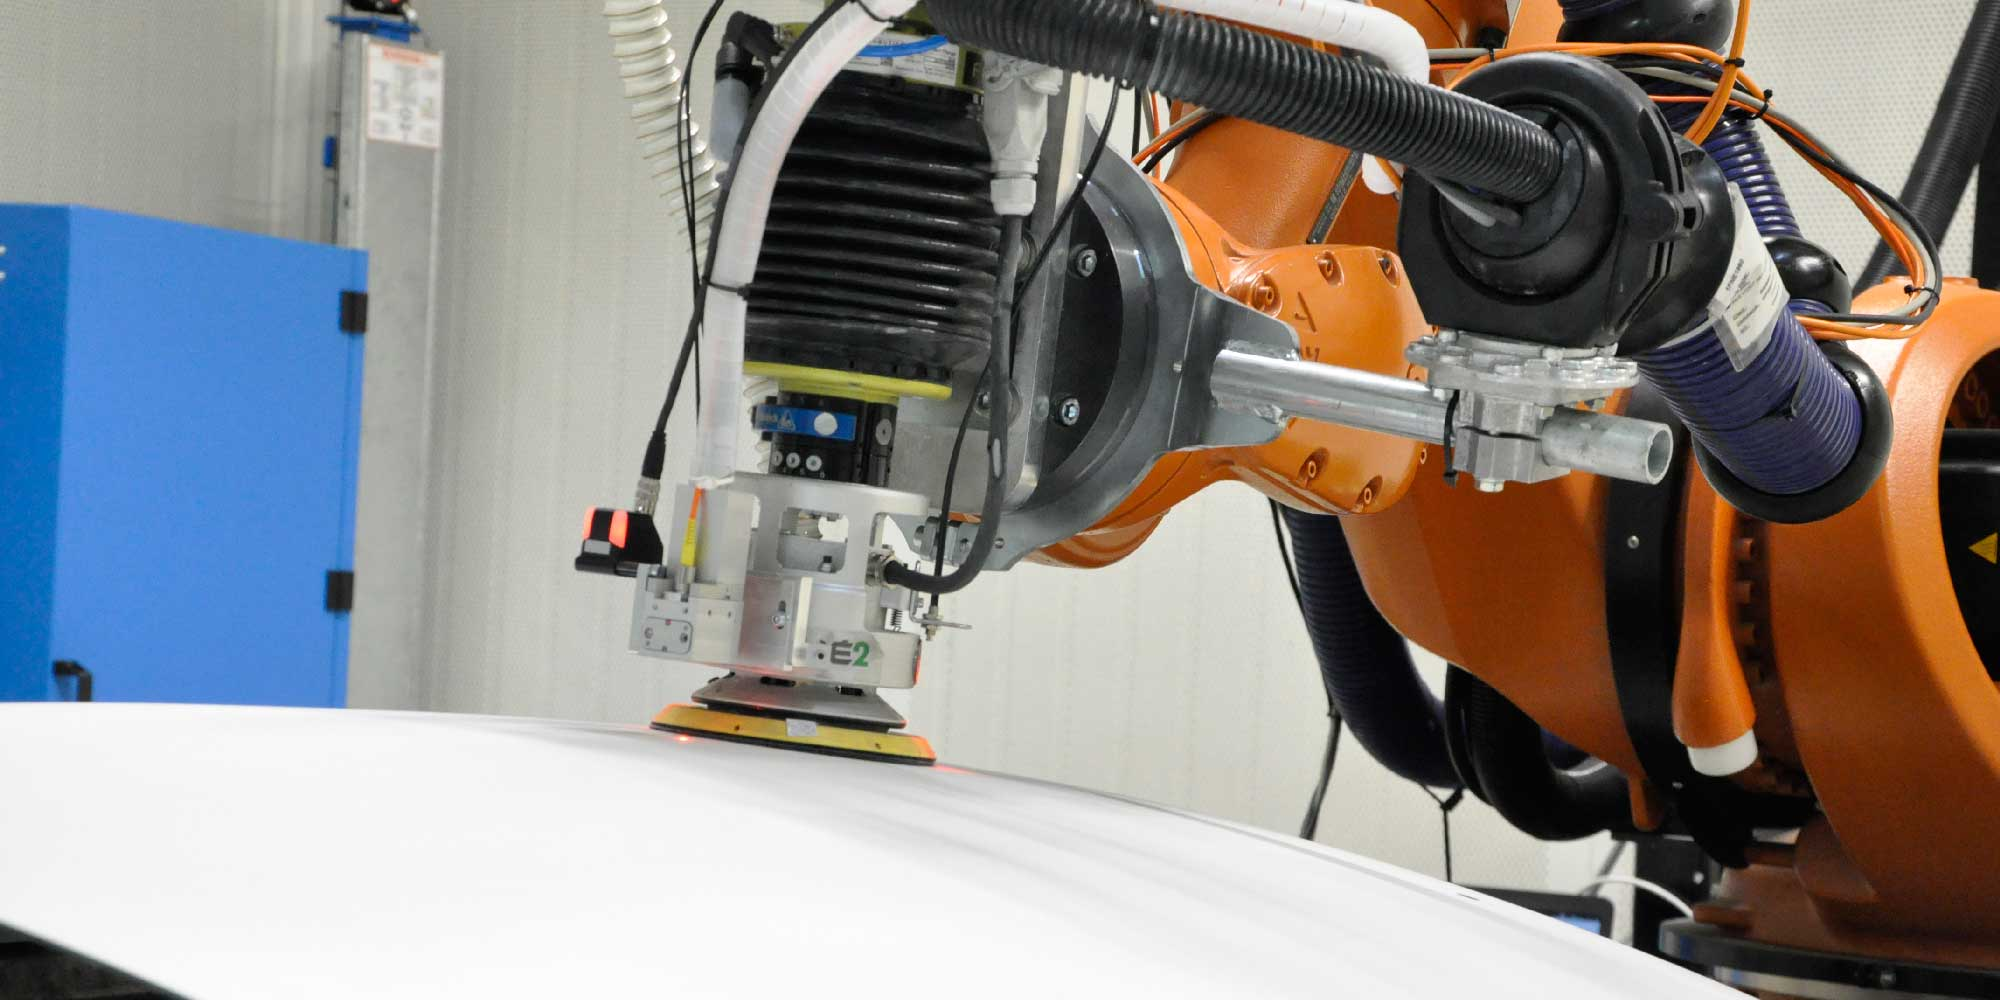 GEBE2-robotic solutions for the industry